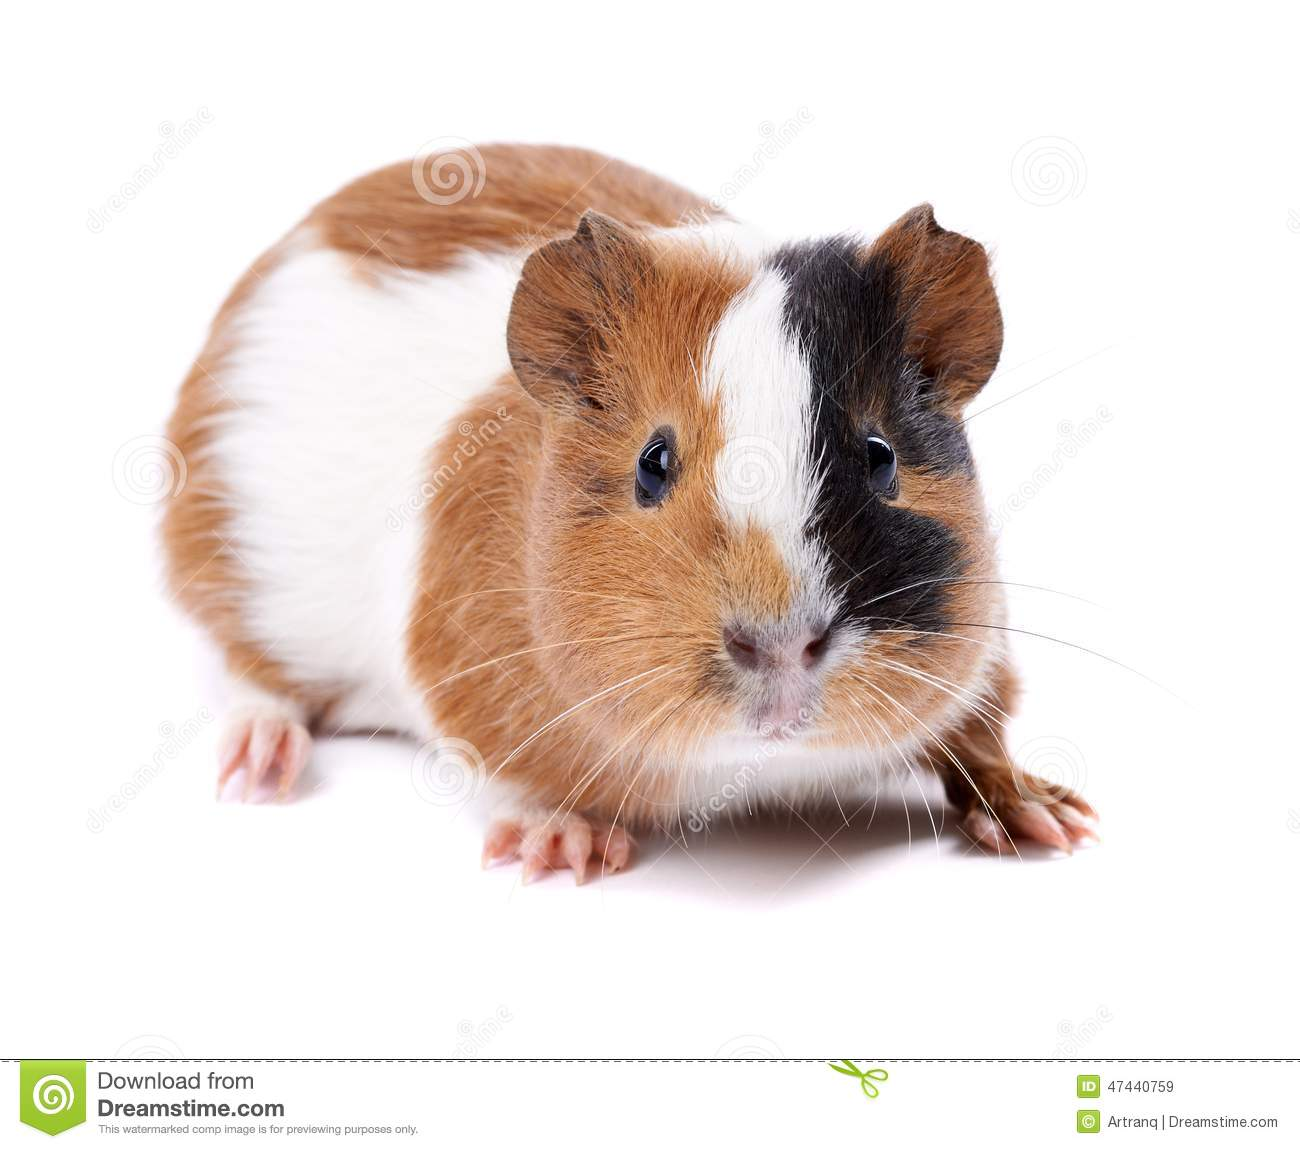 Guinea pig on a white background stock image image 47440759 for Guinea pig pictures free